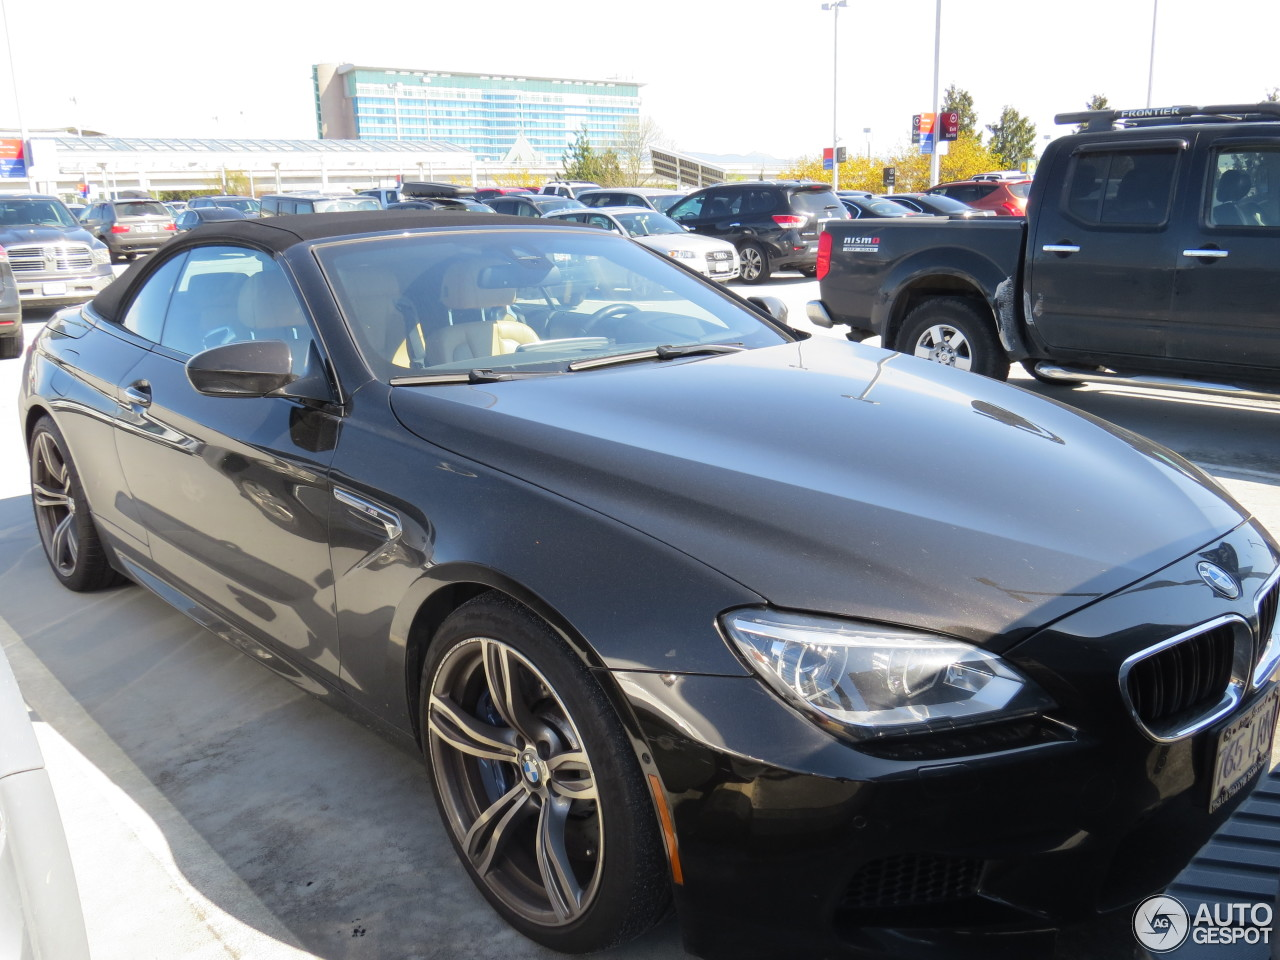 bmw m6 f12 cabriolet 10 april 2016 autogespot. Black Bedroom Furniture Sets. Home Design Ideas